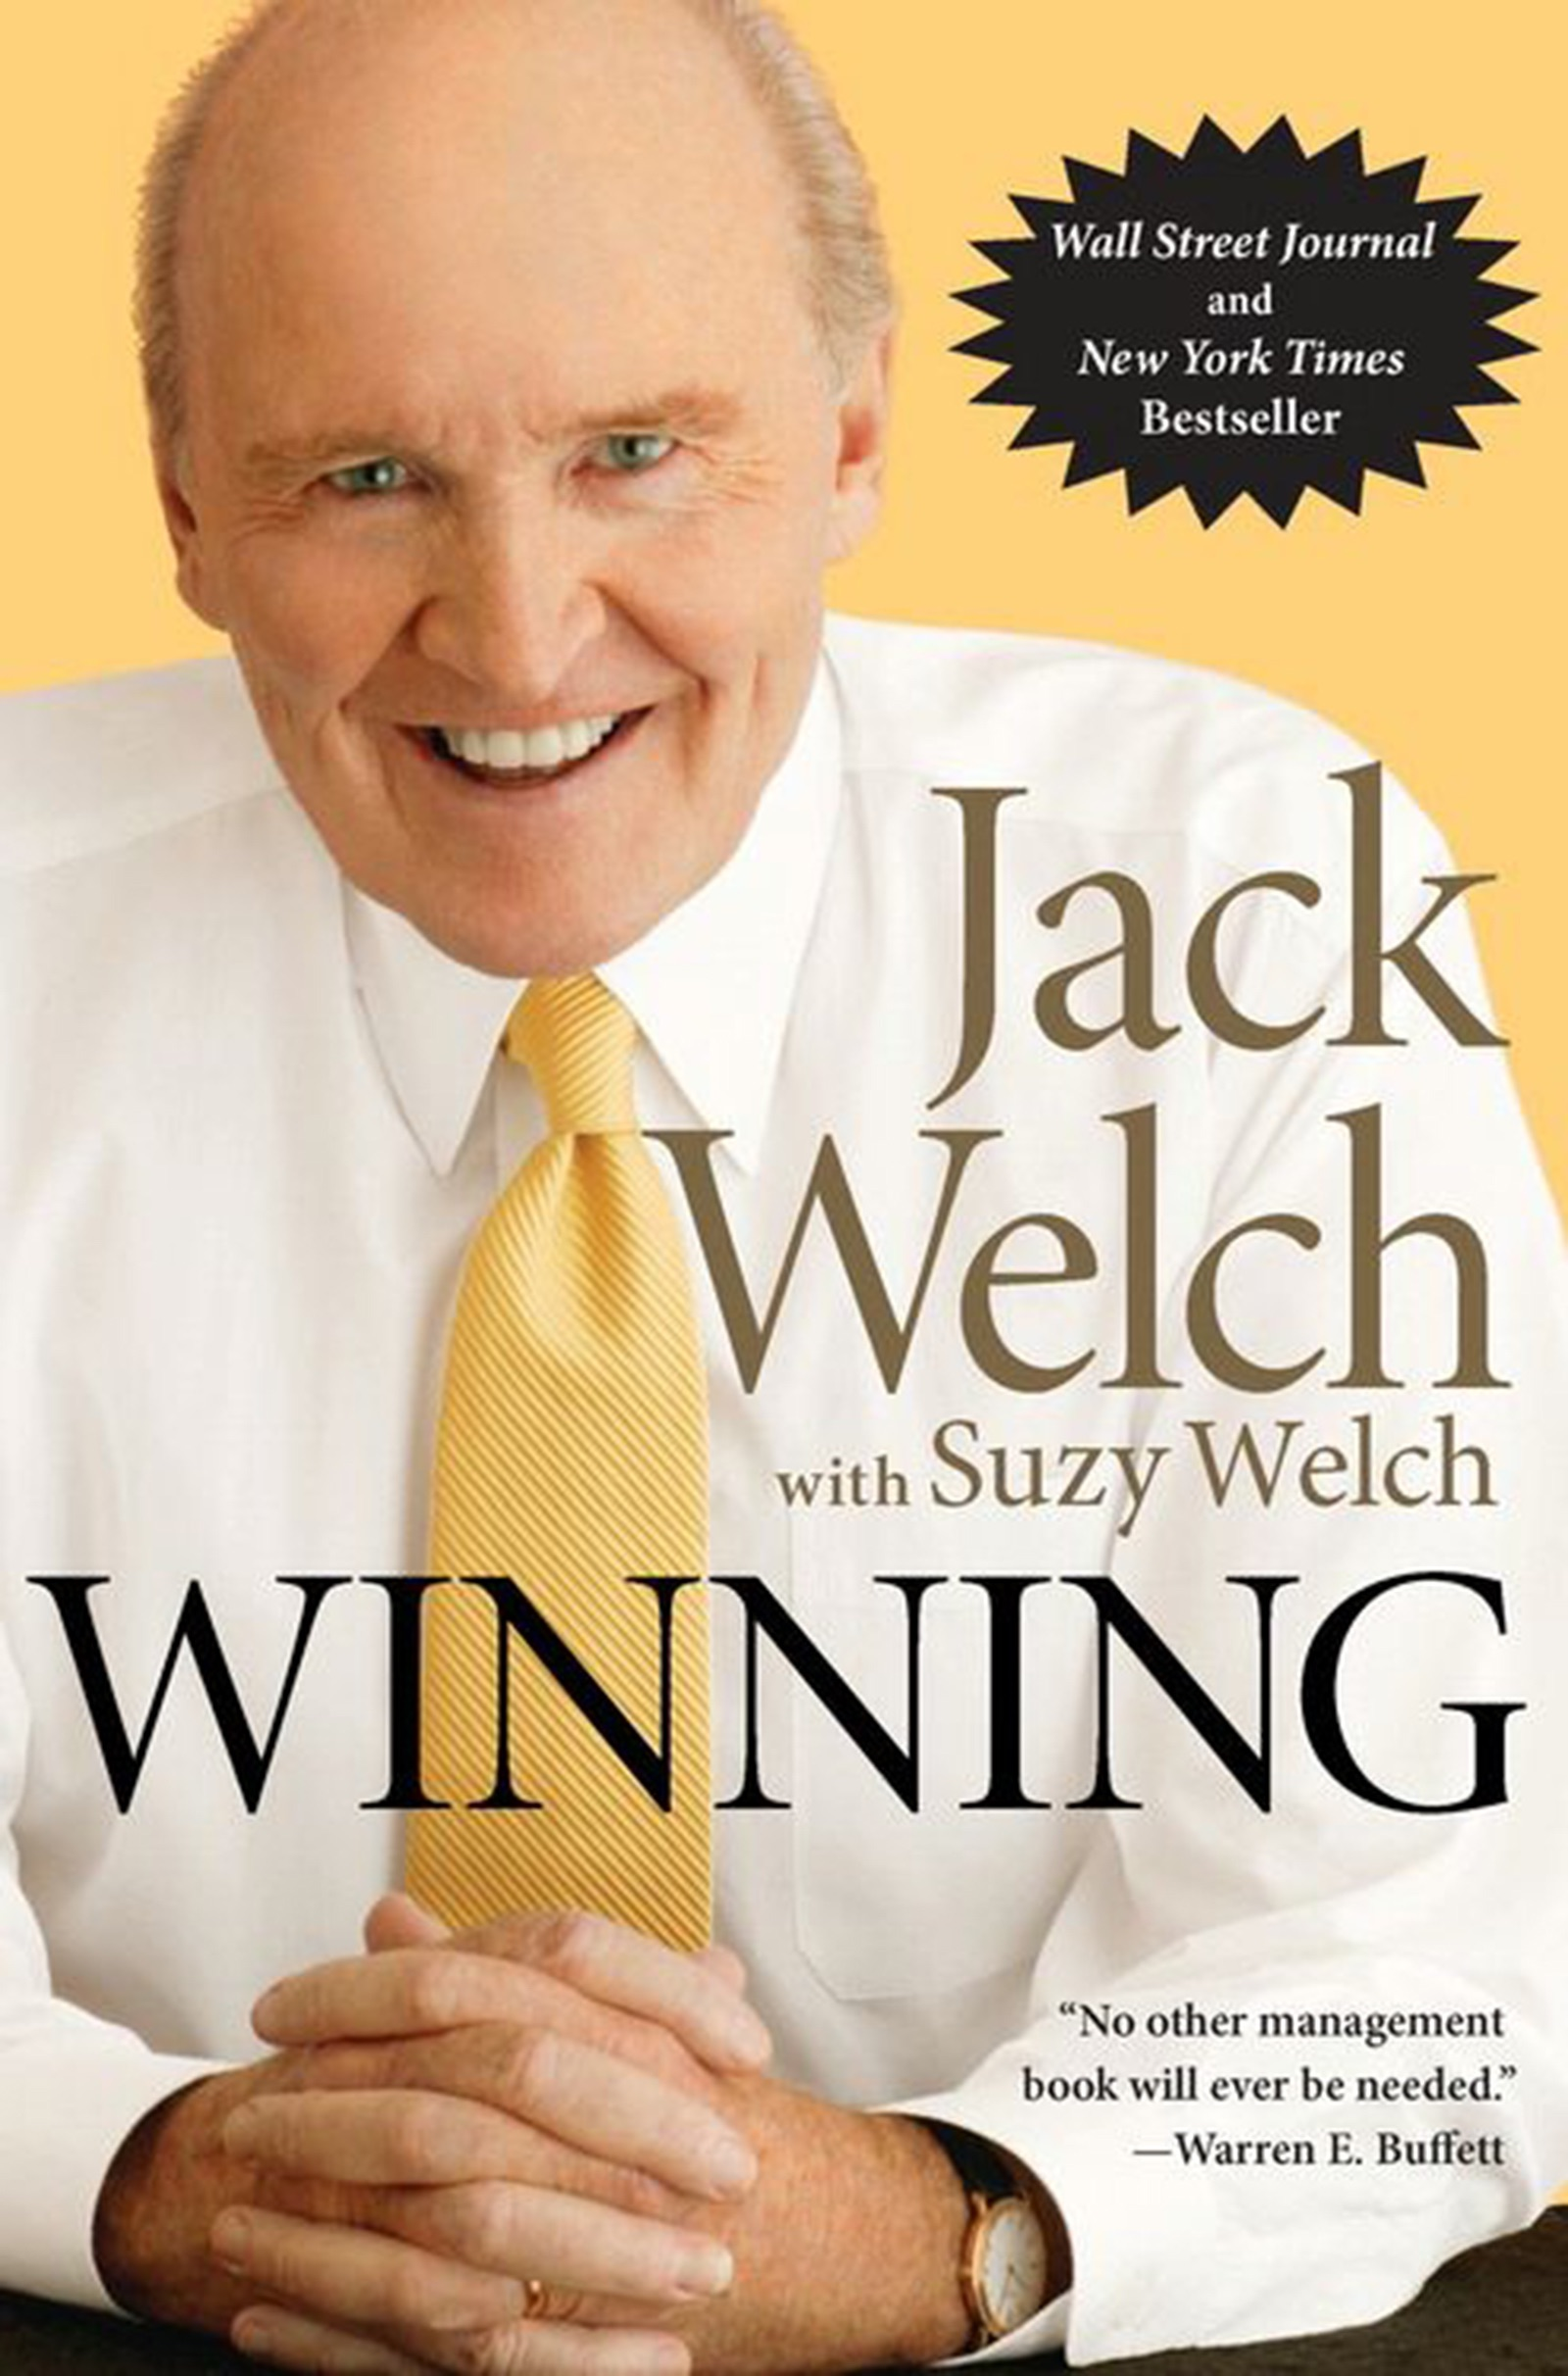 Book Cover of Winning